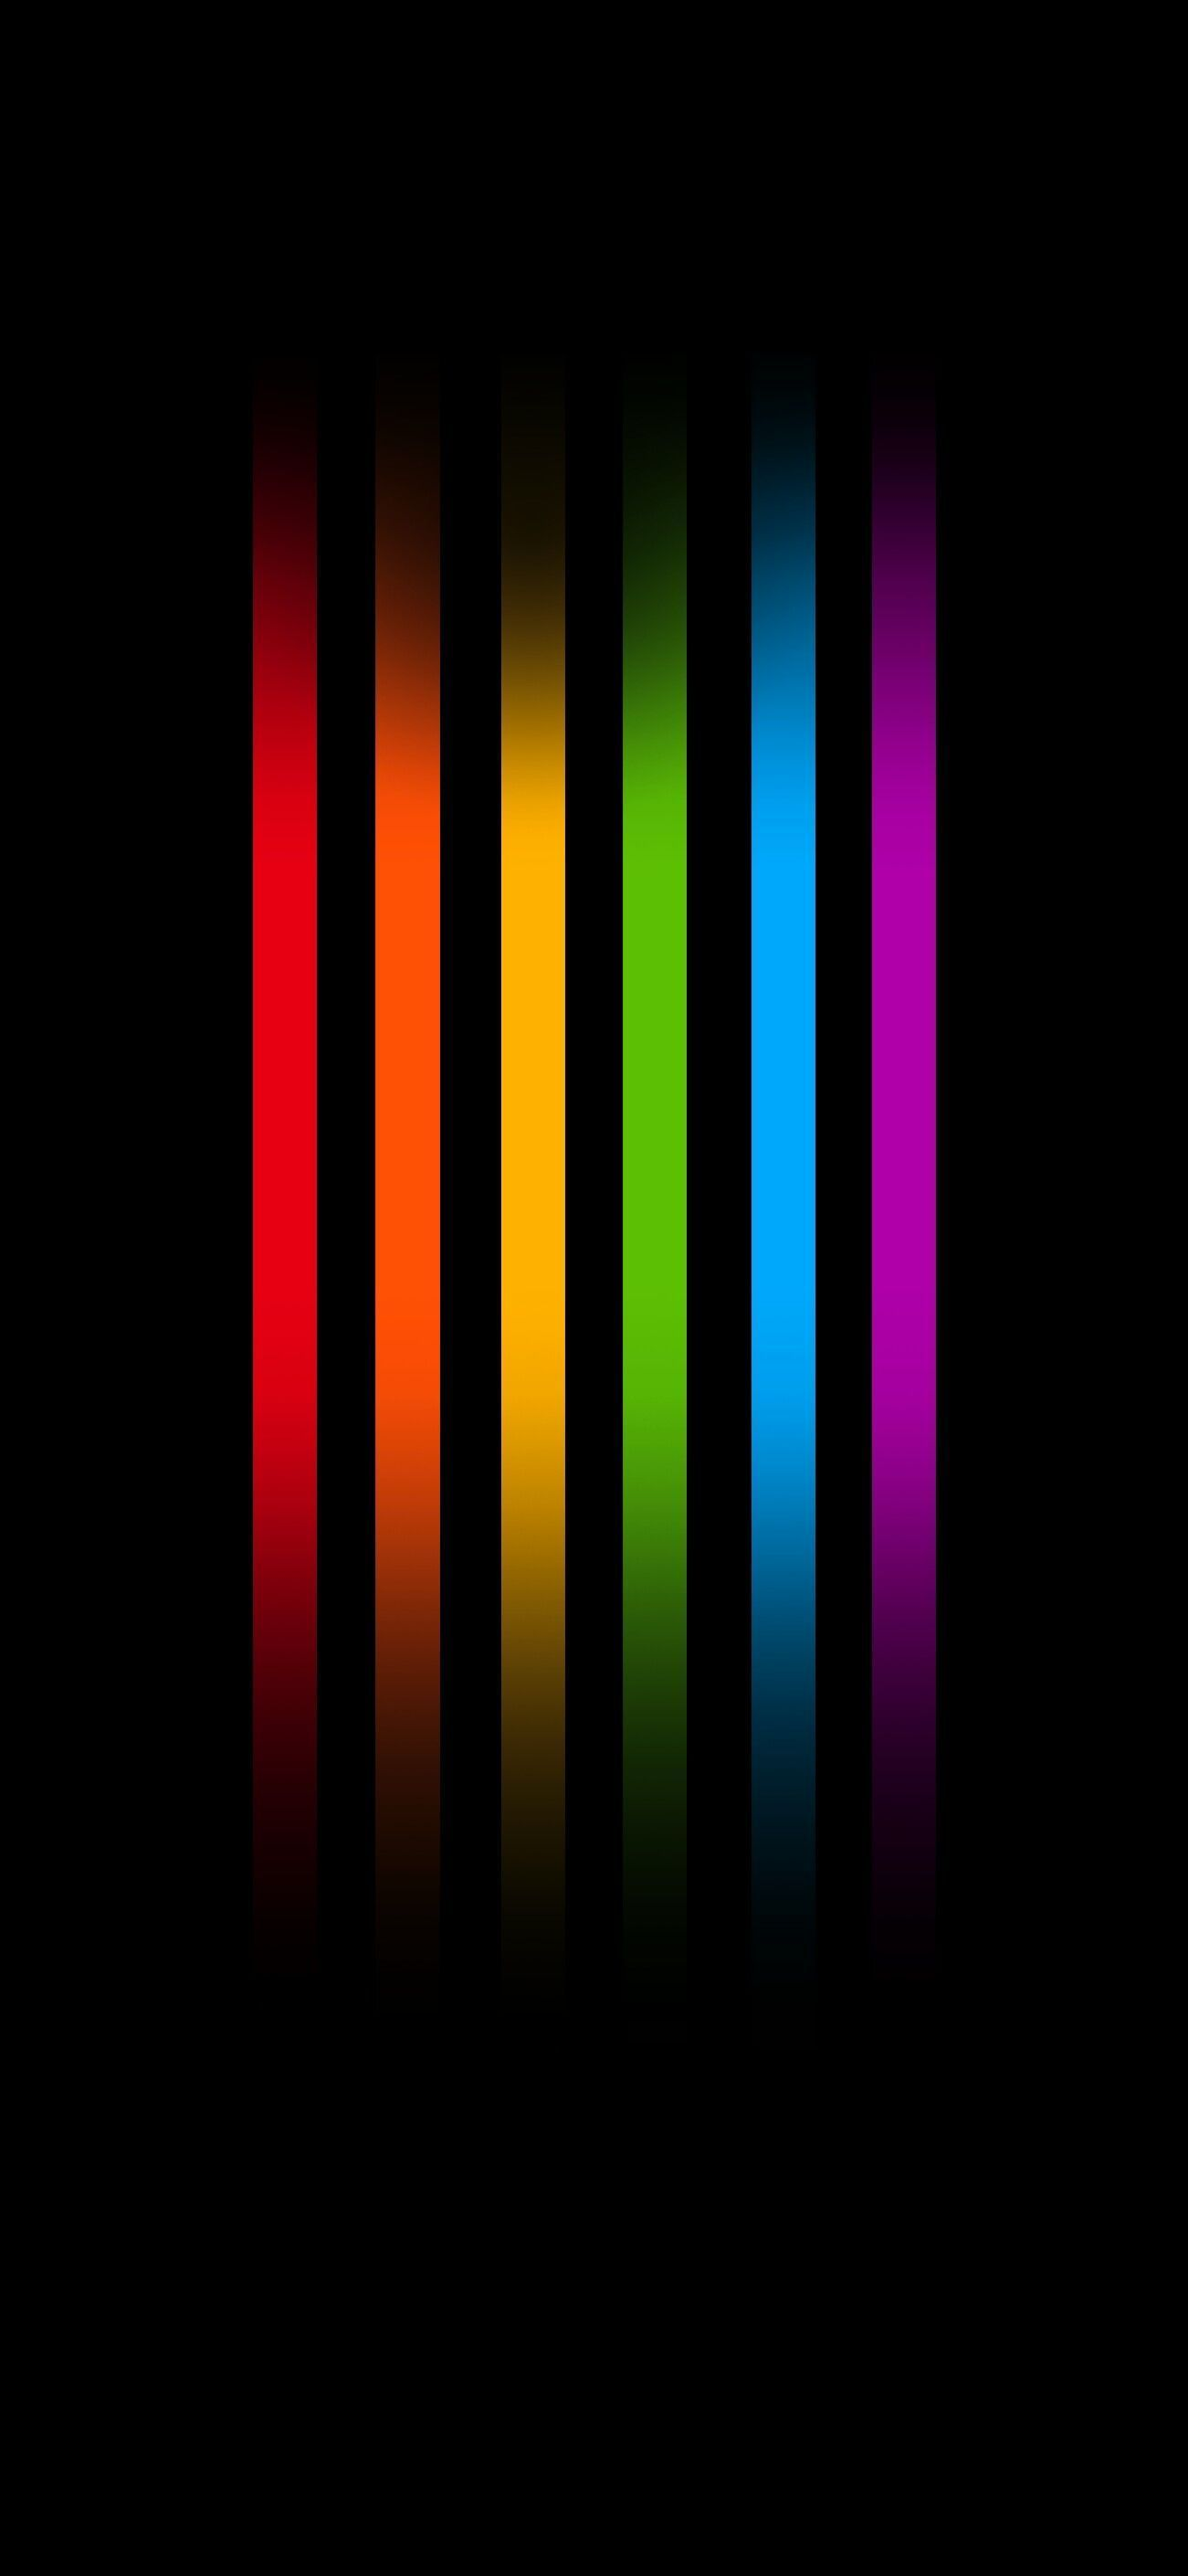 40 Best Colorful Iphone Wallpaper Rainbow Wallpaper Iphone Android Wallpaper Rainbow Wallpaper